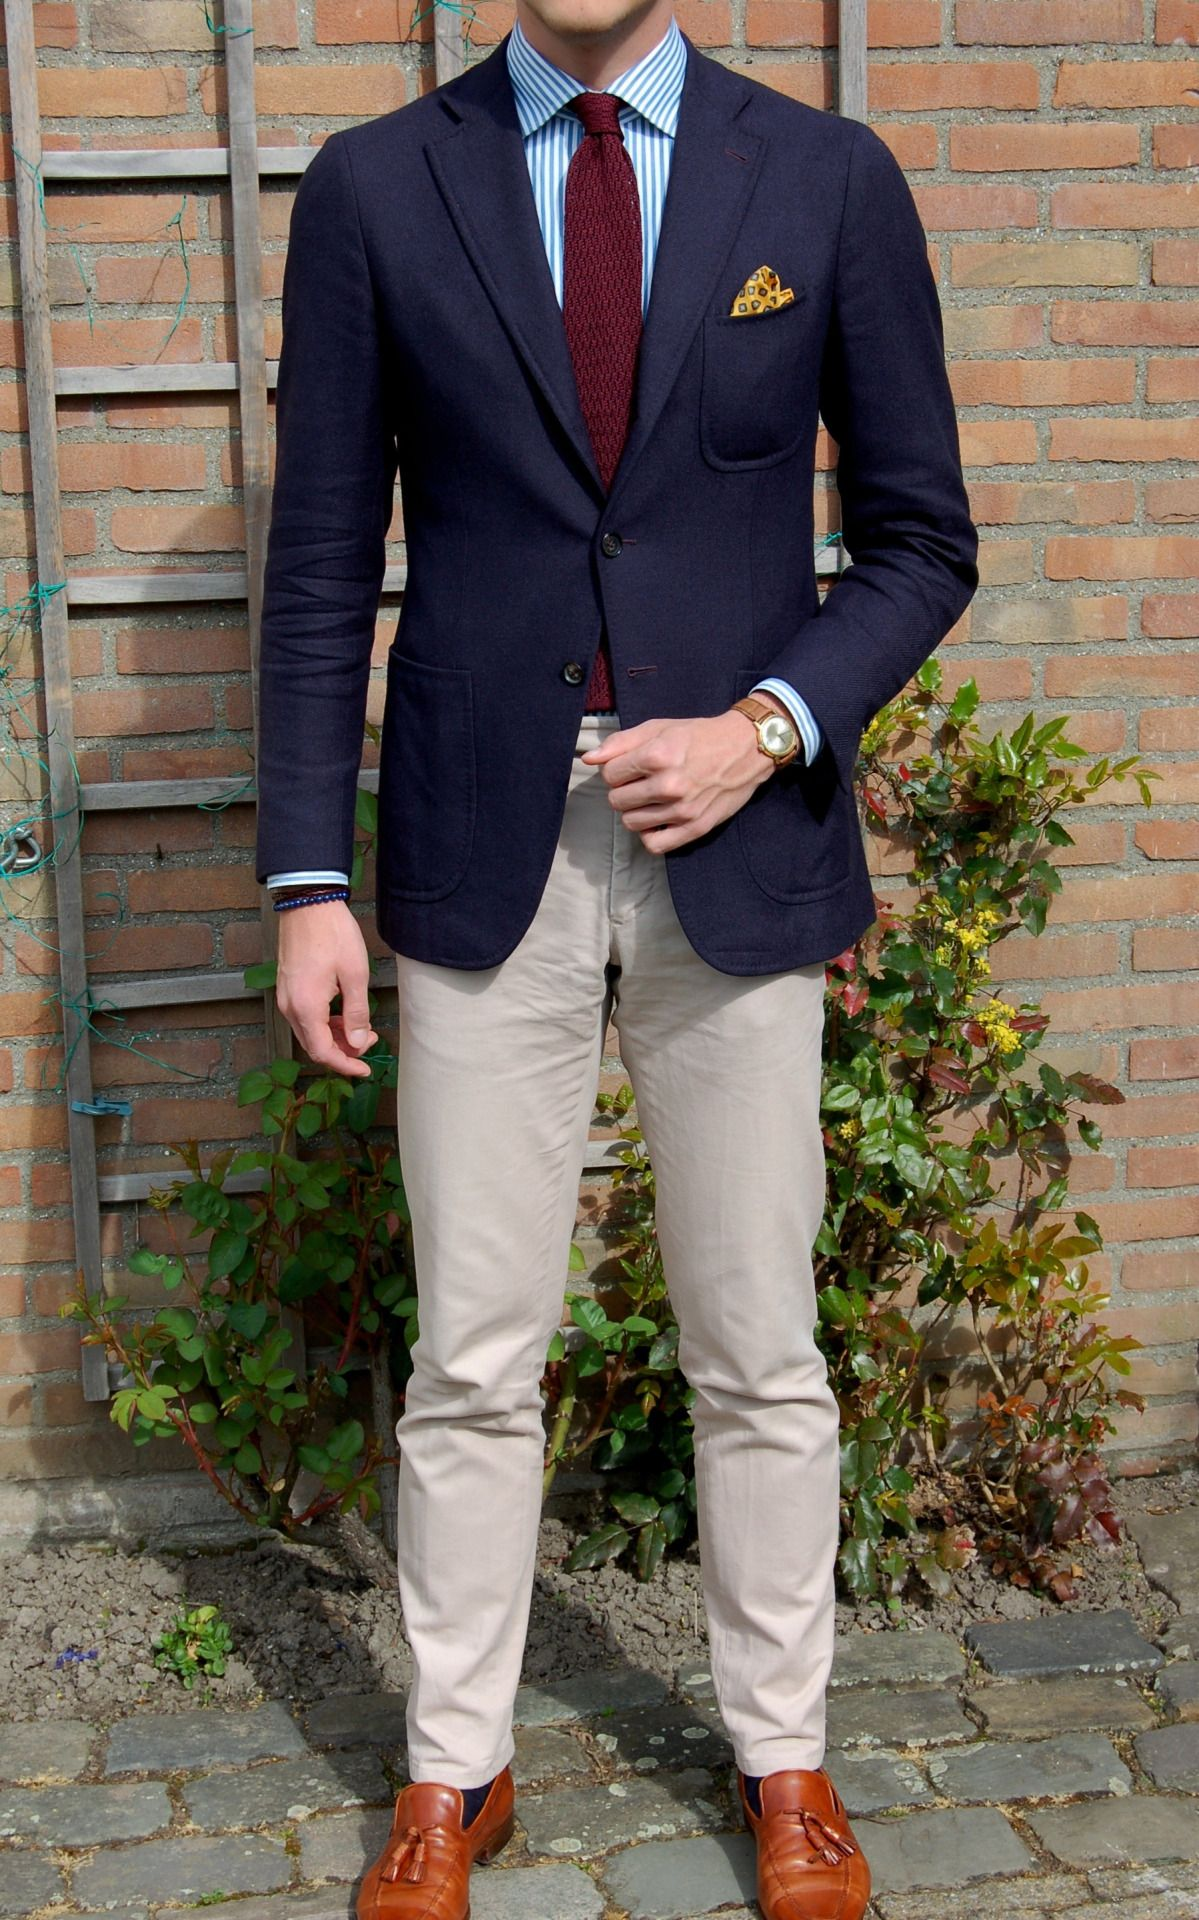 Splendid Wedding Outfits for Guys in fashion Pinterest